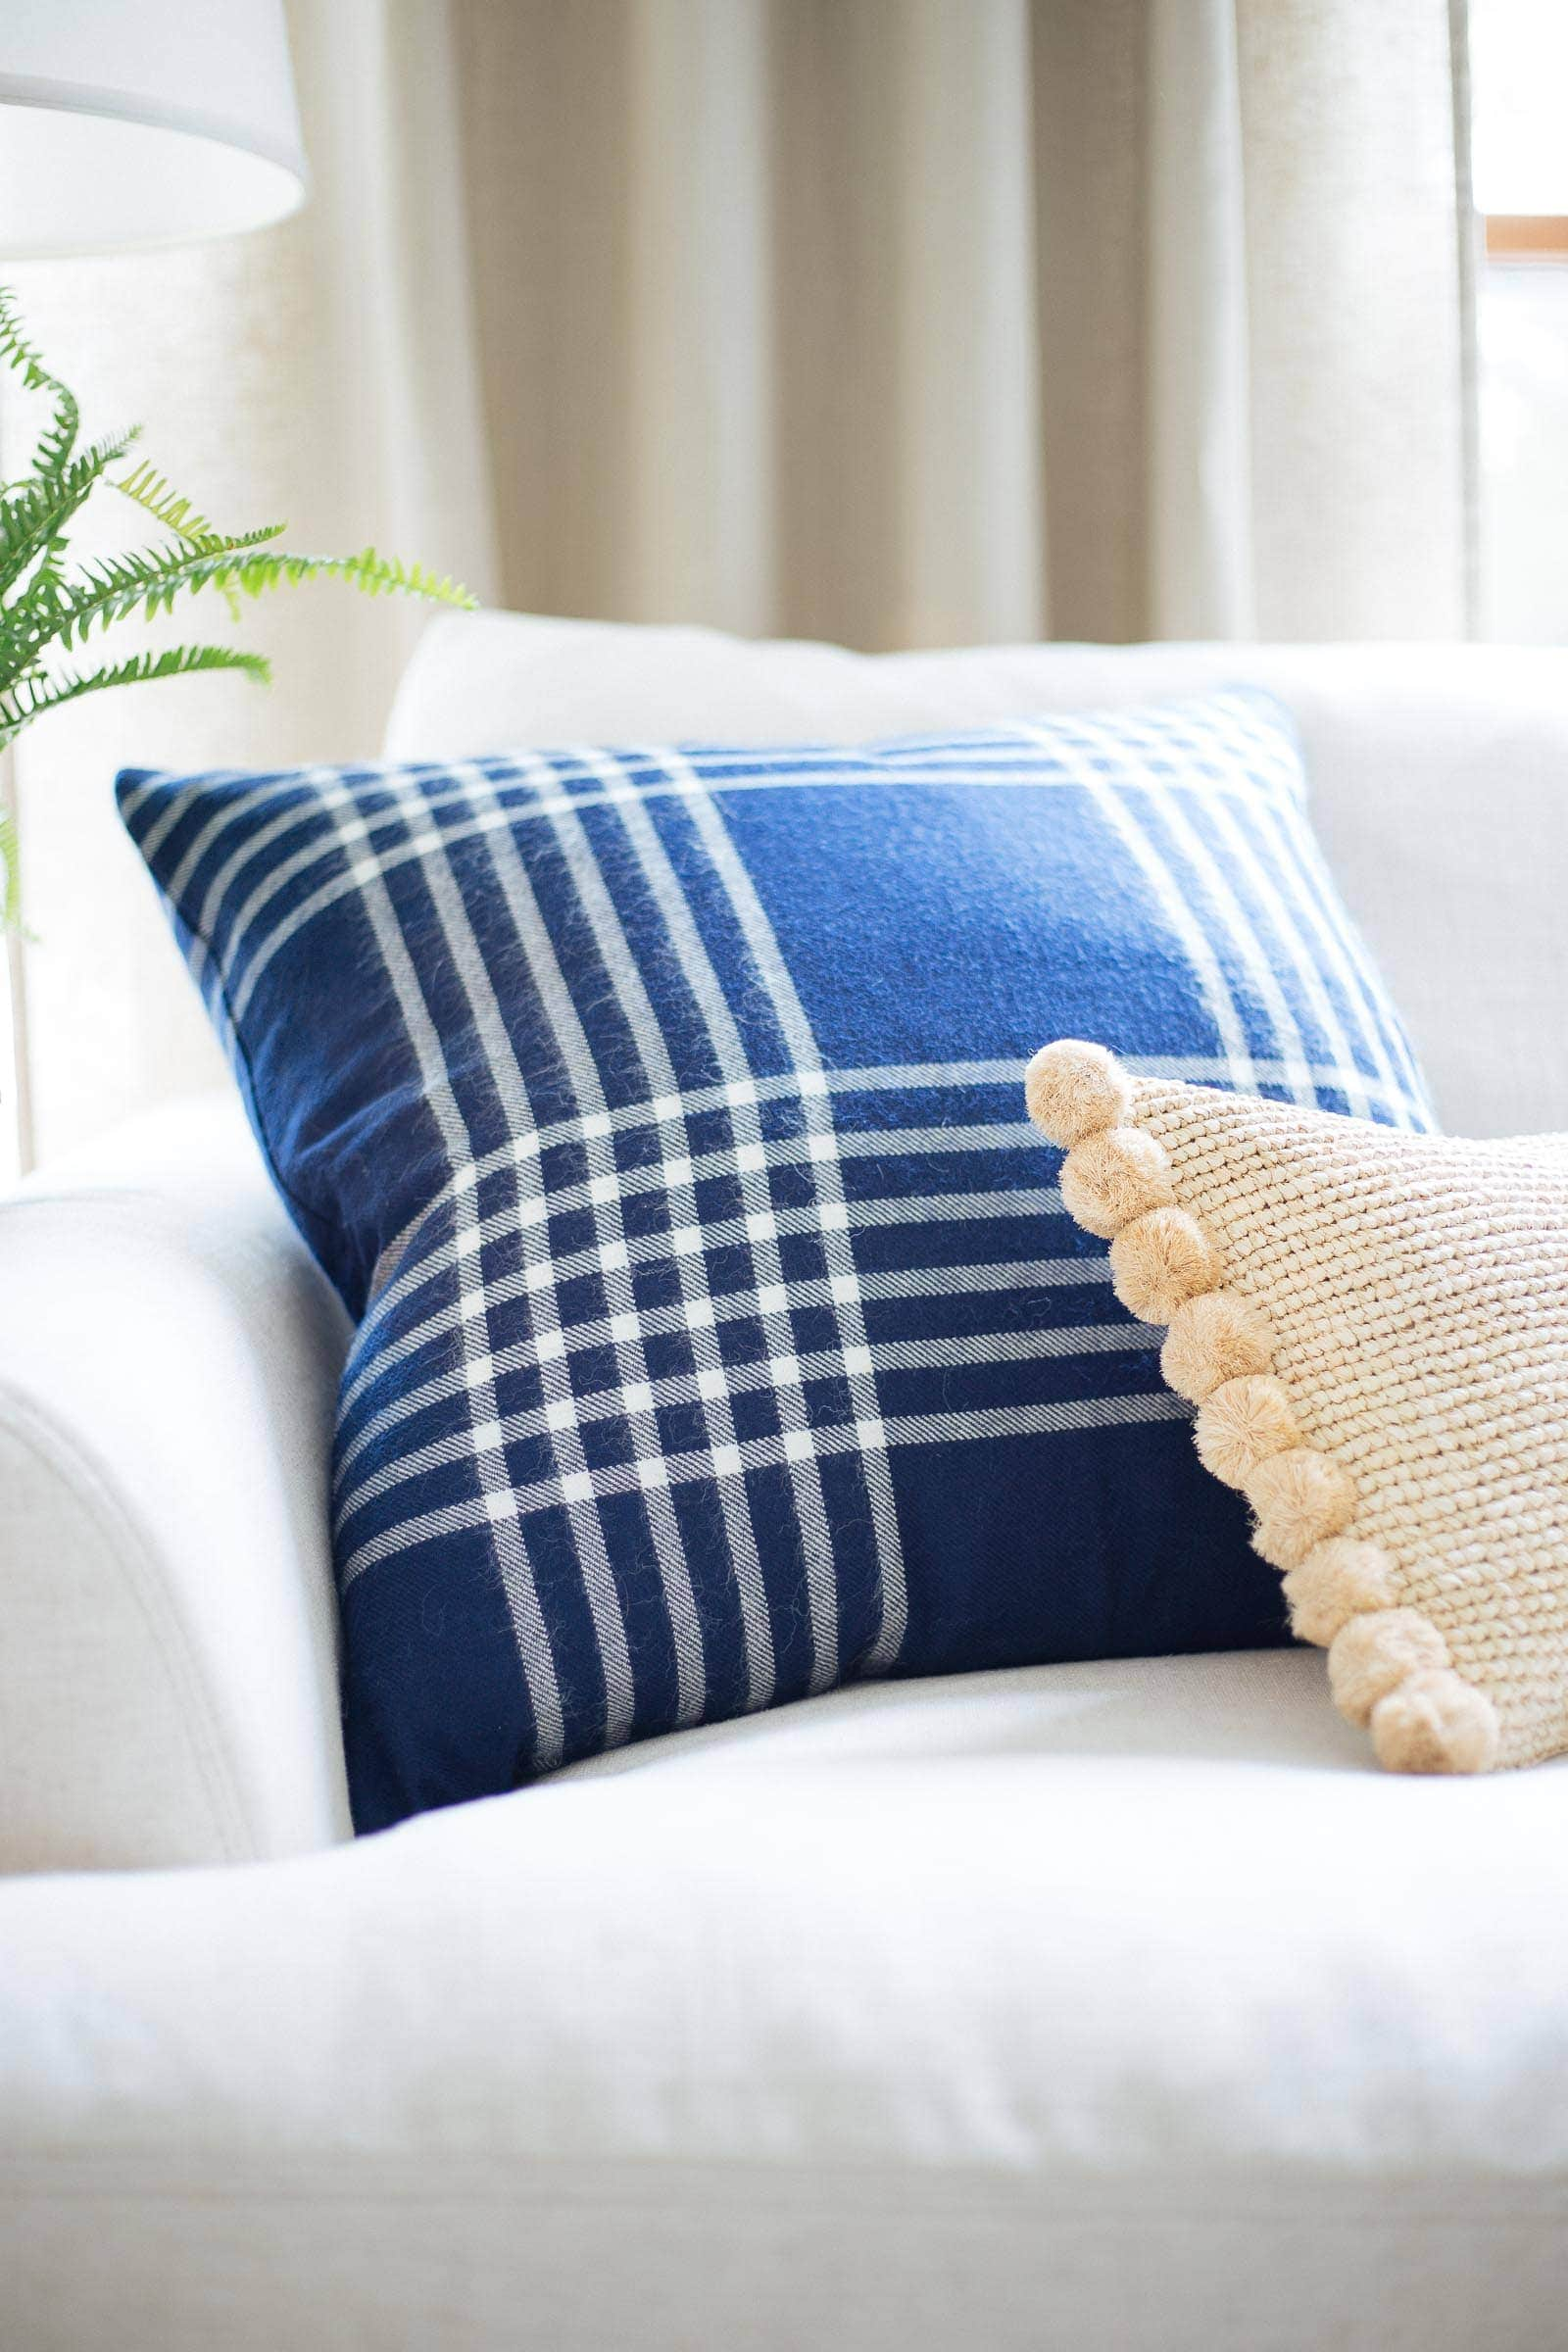 blue plaid pillow and rattan lumbar pillow from Serena & Lily